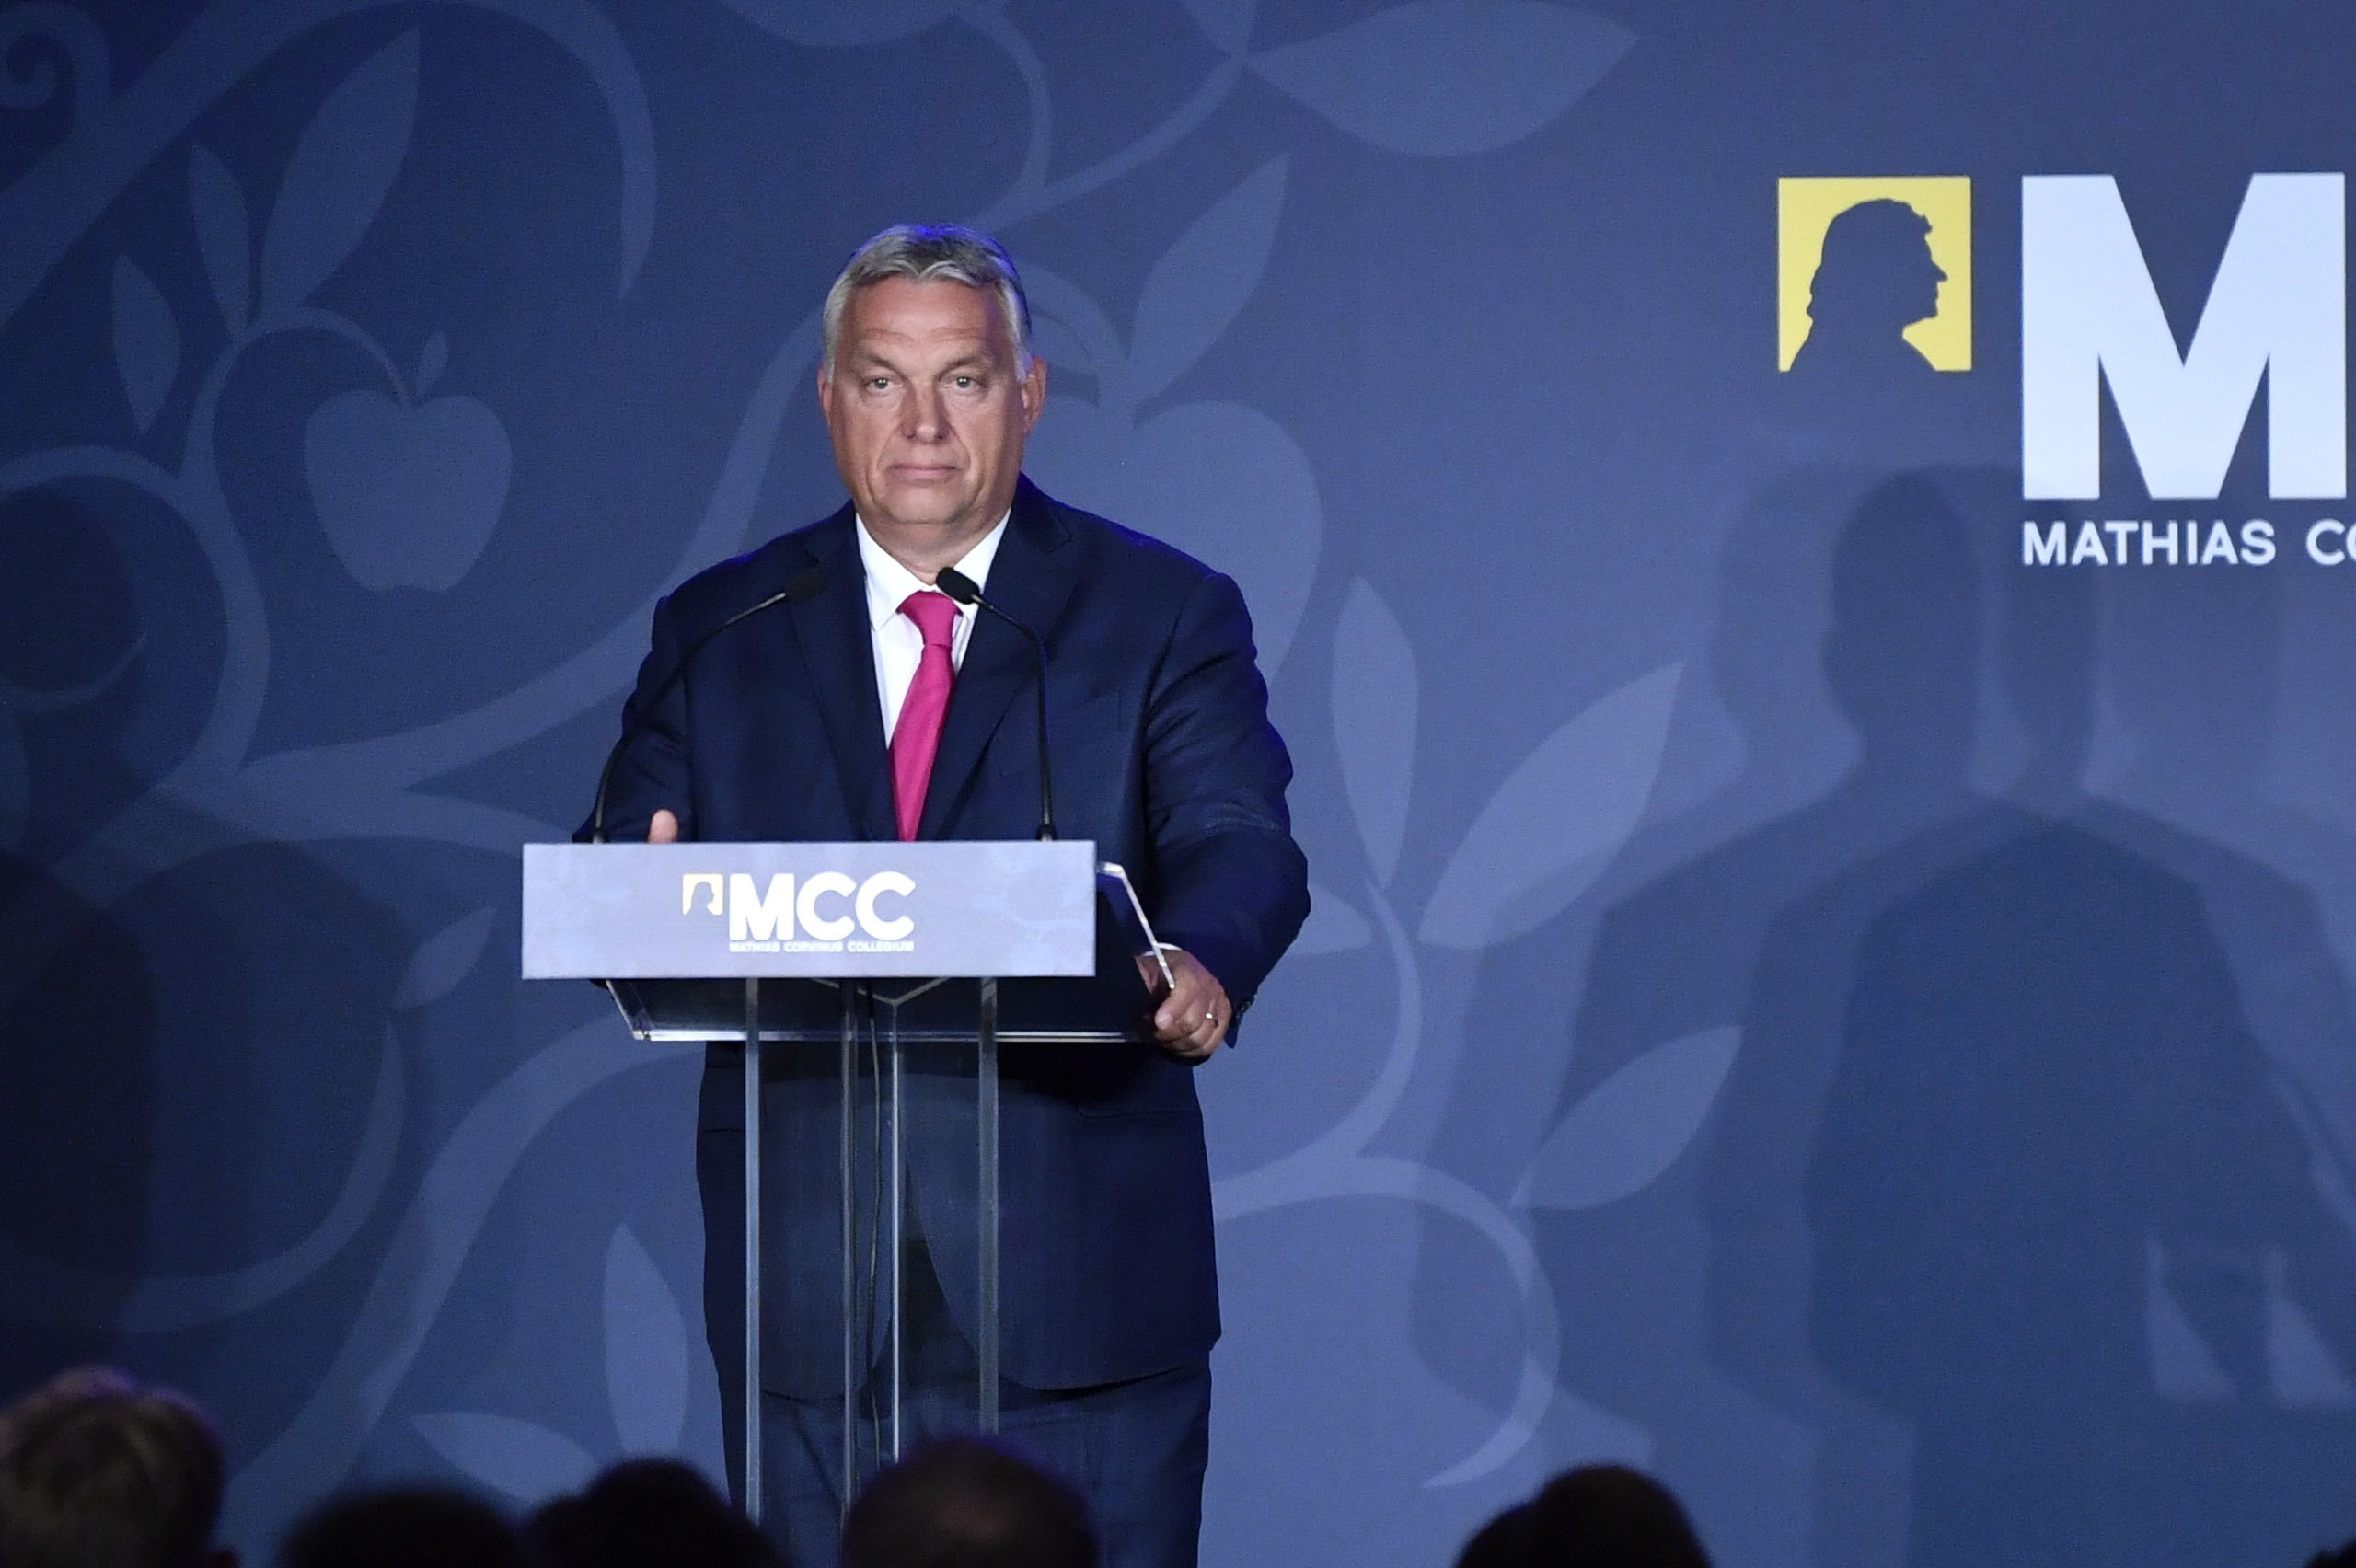 PM Orbán: Protection of Carpathian Basin Hungarians' Centuries-Long Mission